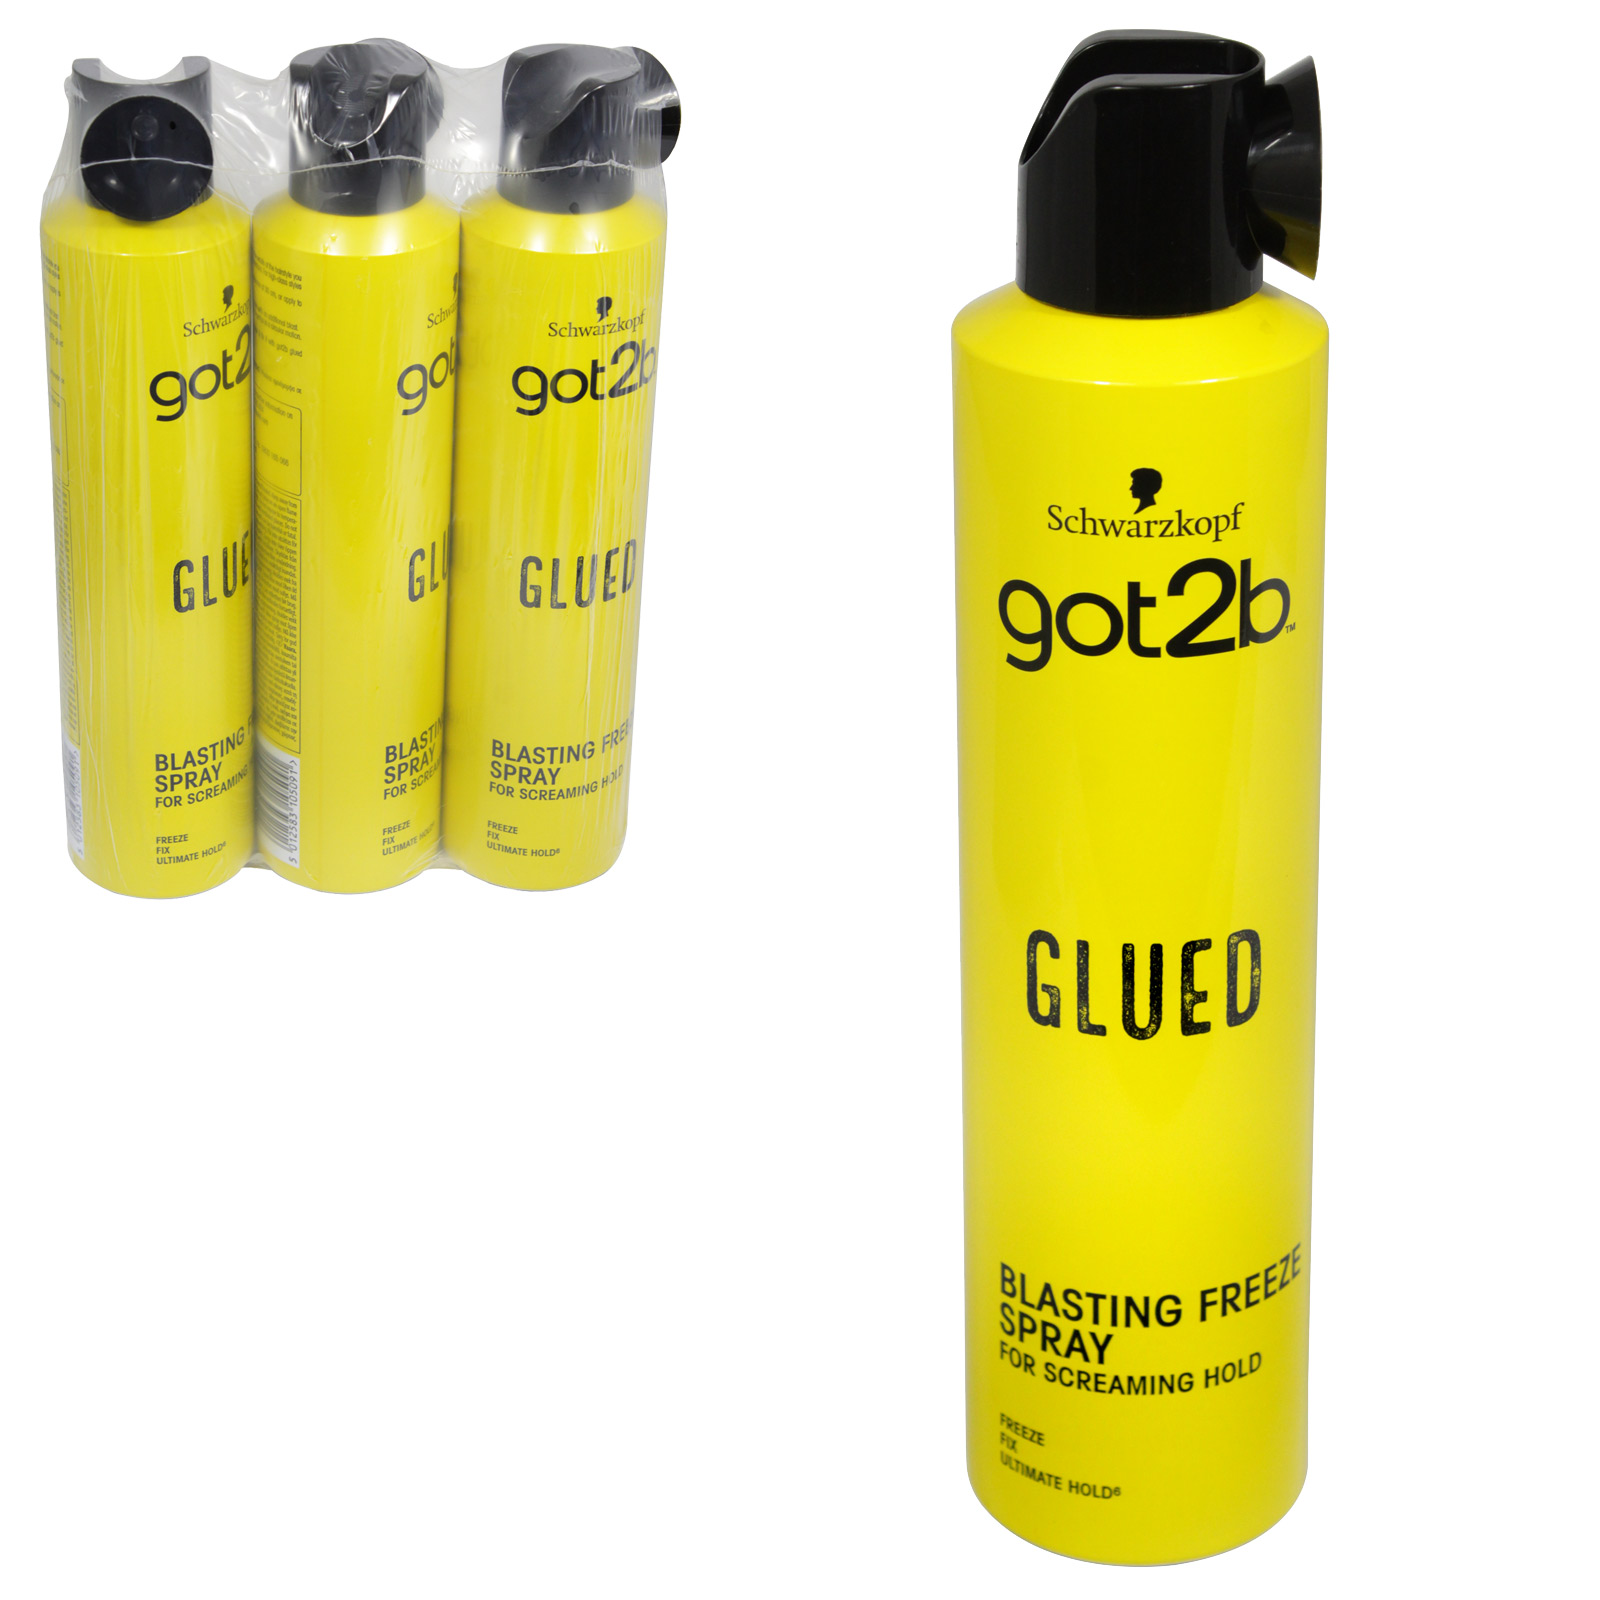 SCHWARZKOPF GOT 2B GI BLASTING FREEZE SPRAY 300ML X3